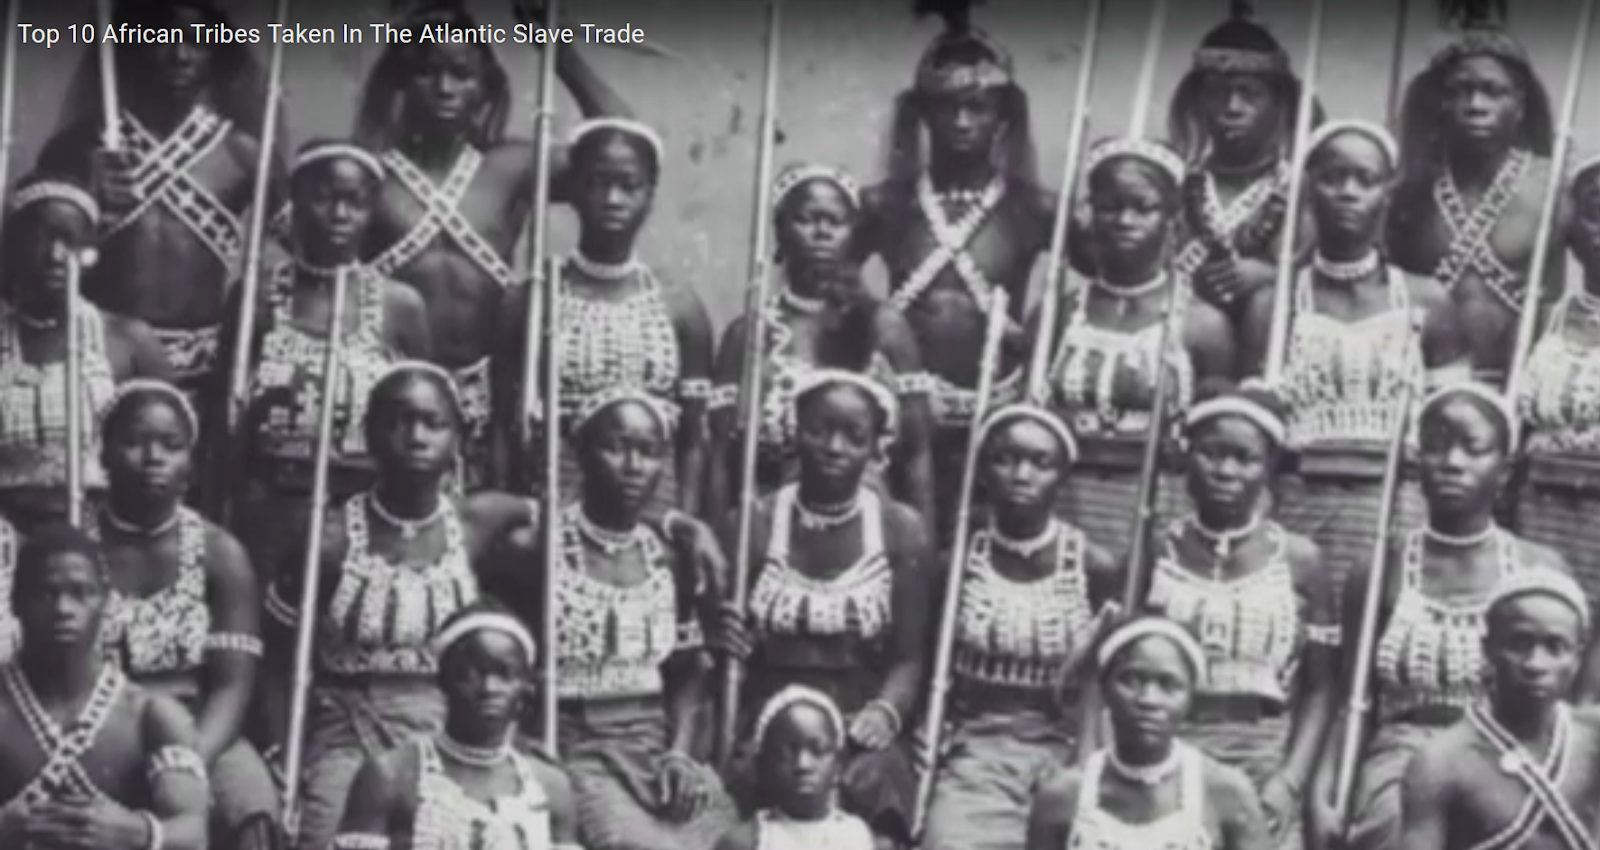 Top 10 African Tribes Taken in the Atlantic Slave Trade